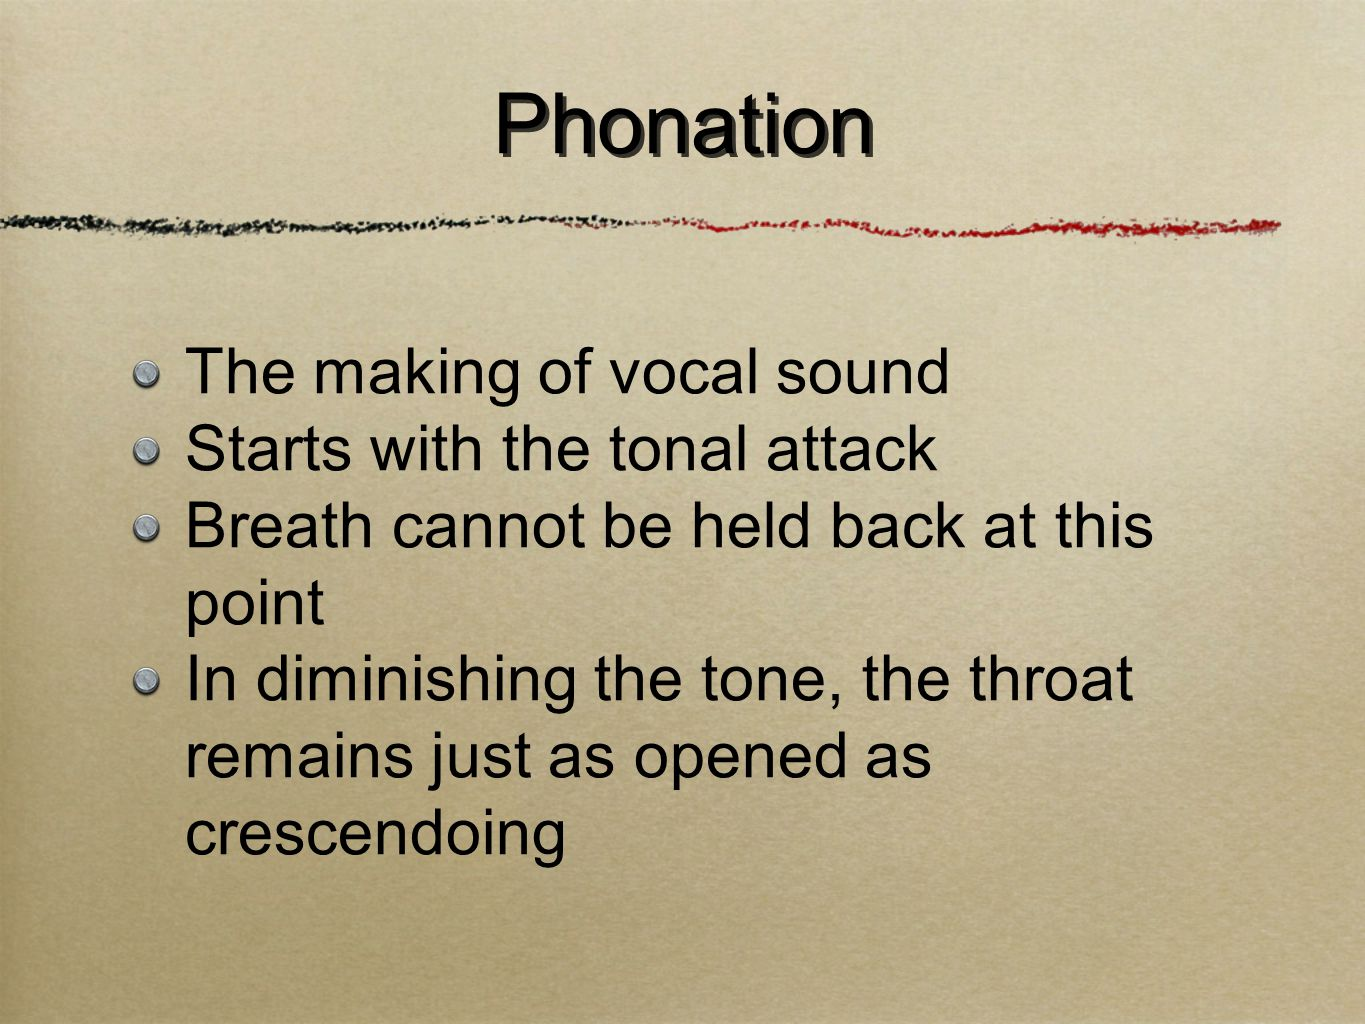 The making of vocal sound Starts with the tonal attack Breath cannot be held back at this point In diminishing the tone, the throat remains just as opened as crescendoing Phonation